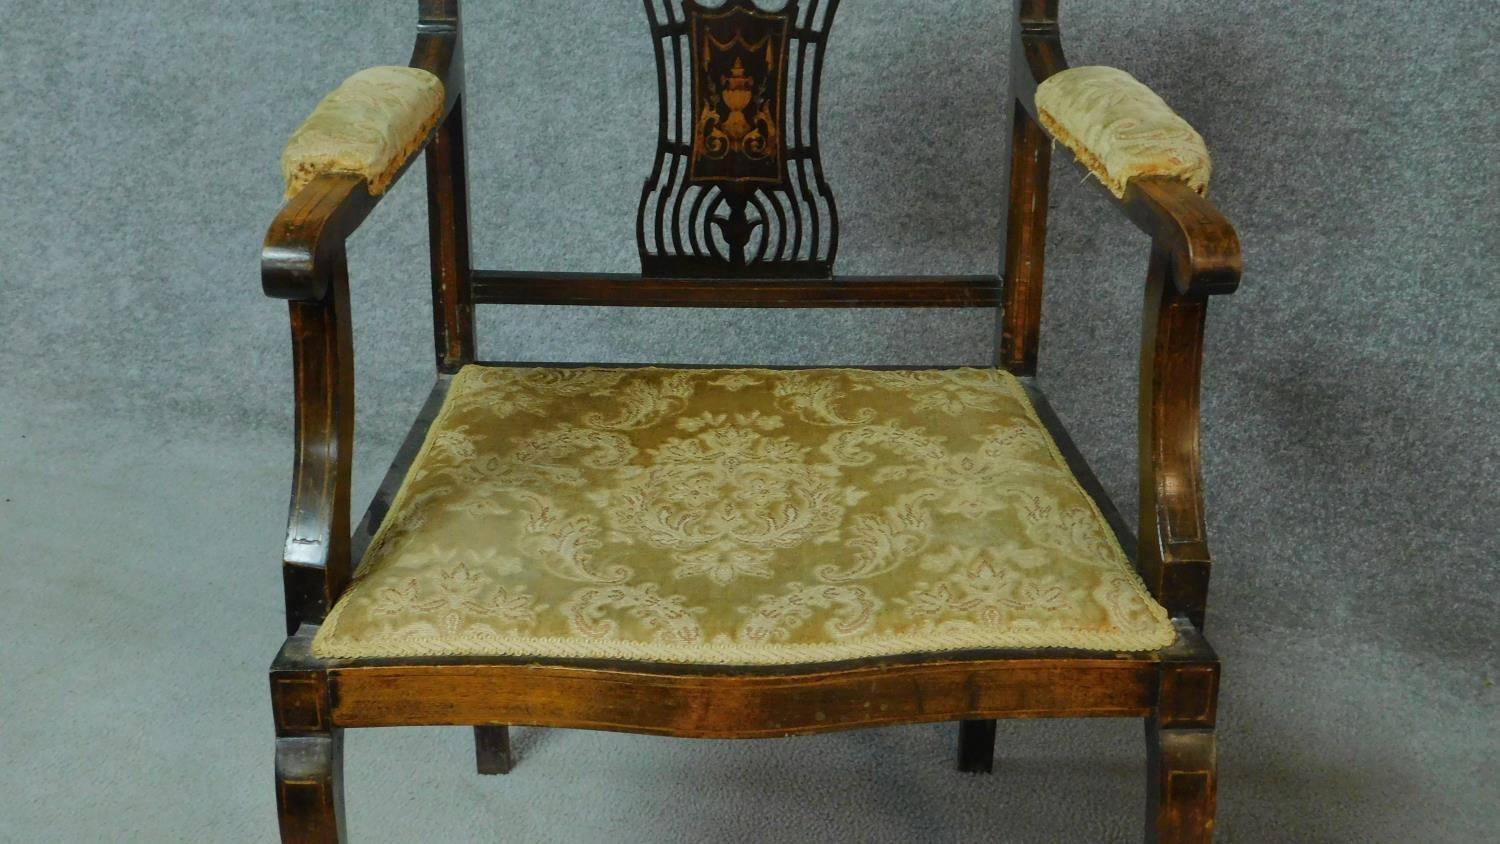 A late Victorian mahogany and satinwood inlaid armchair with urn design to the back, floral - Image 4 of 7